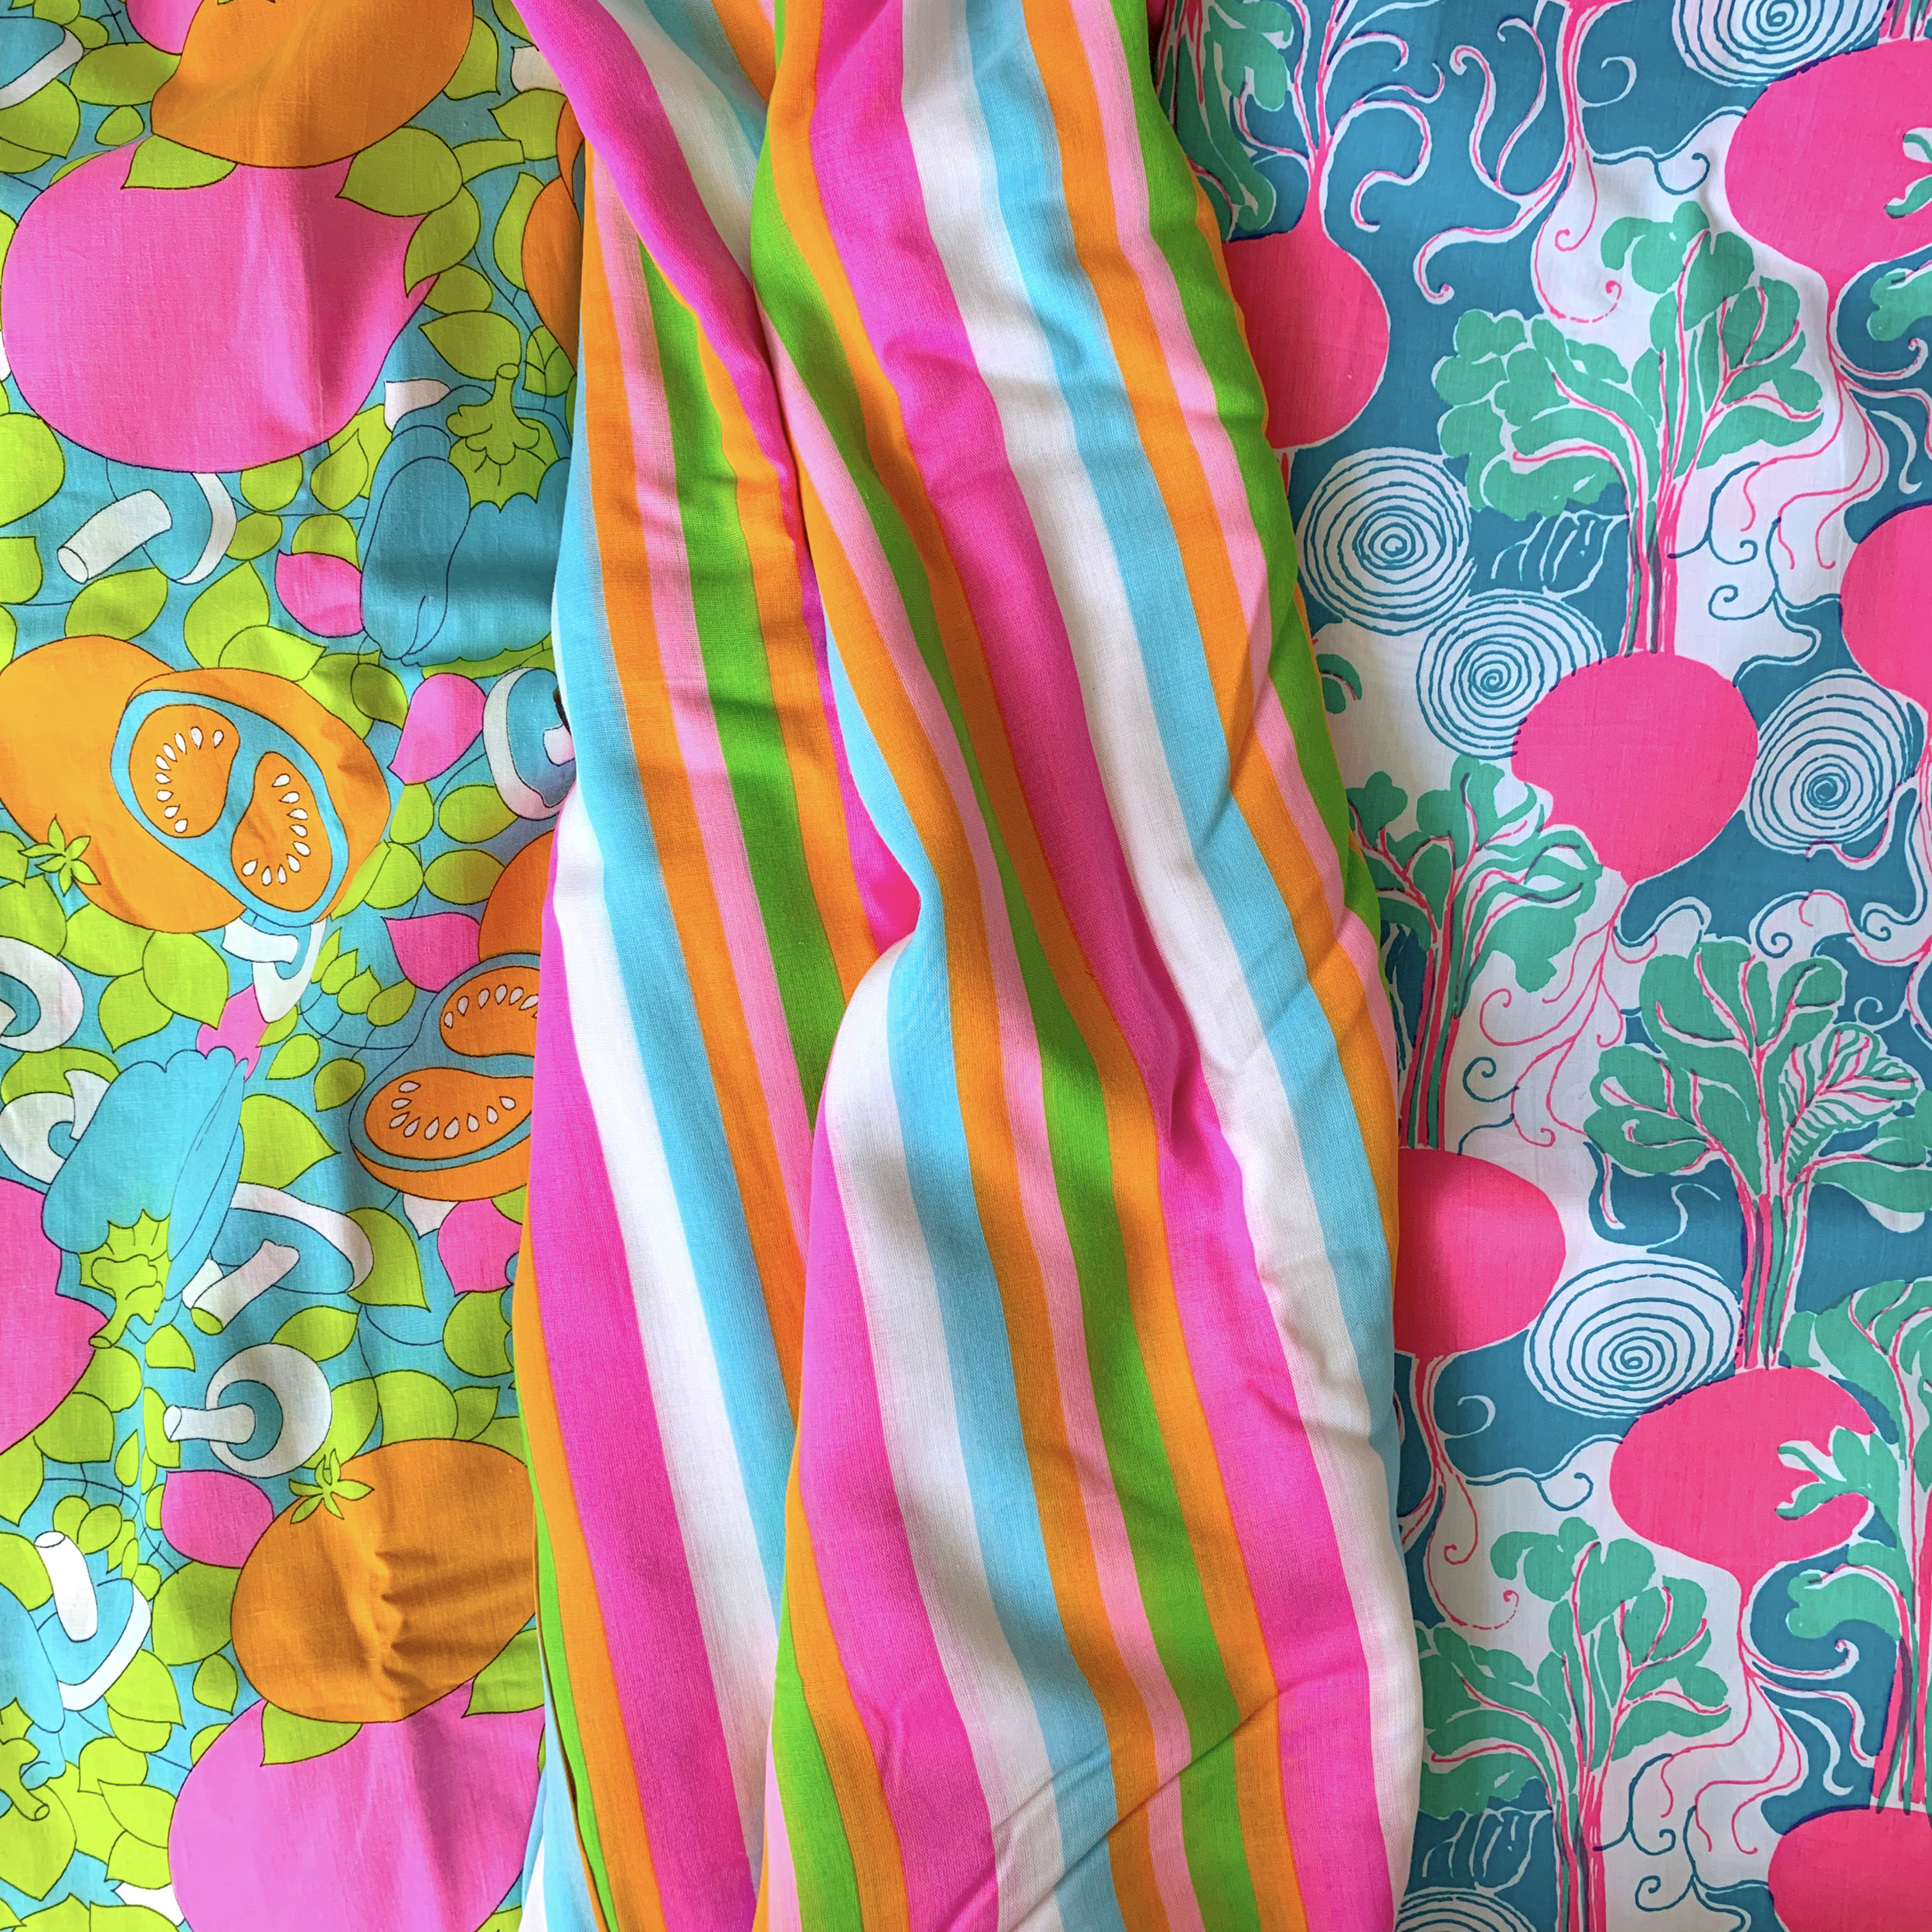 Neon vintage prints: The vegetable print is vintage dressweight cotton, it has been in my stash for about 8-9 years. The stripe is an amazing poly/cotton lawn, and was a gift from my BFF Lizzy; she found 5 yards at an estate sale for $5. The Beets print is a Lily Pulitzer curtain, a gift from another dear friend - I have had it since college!